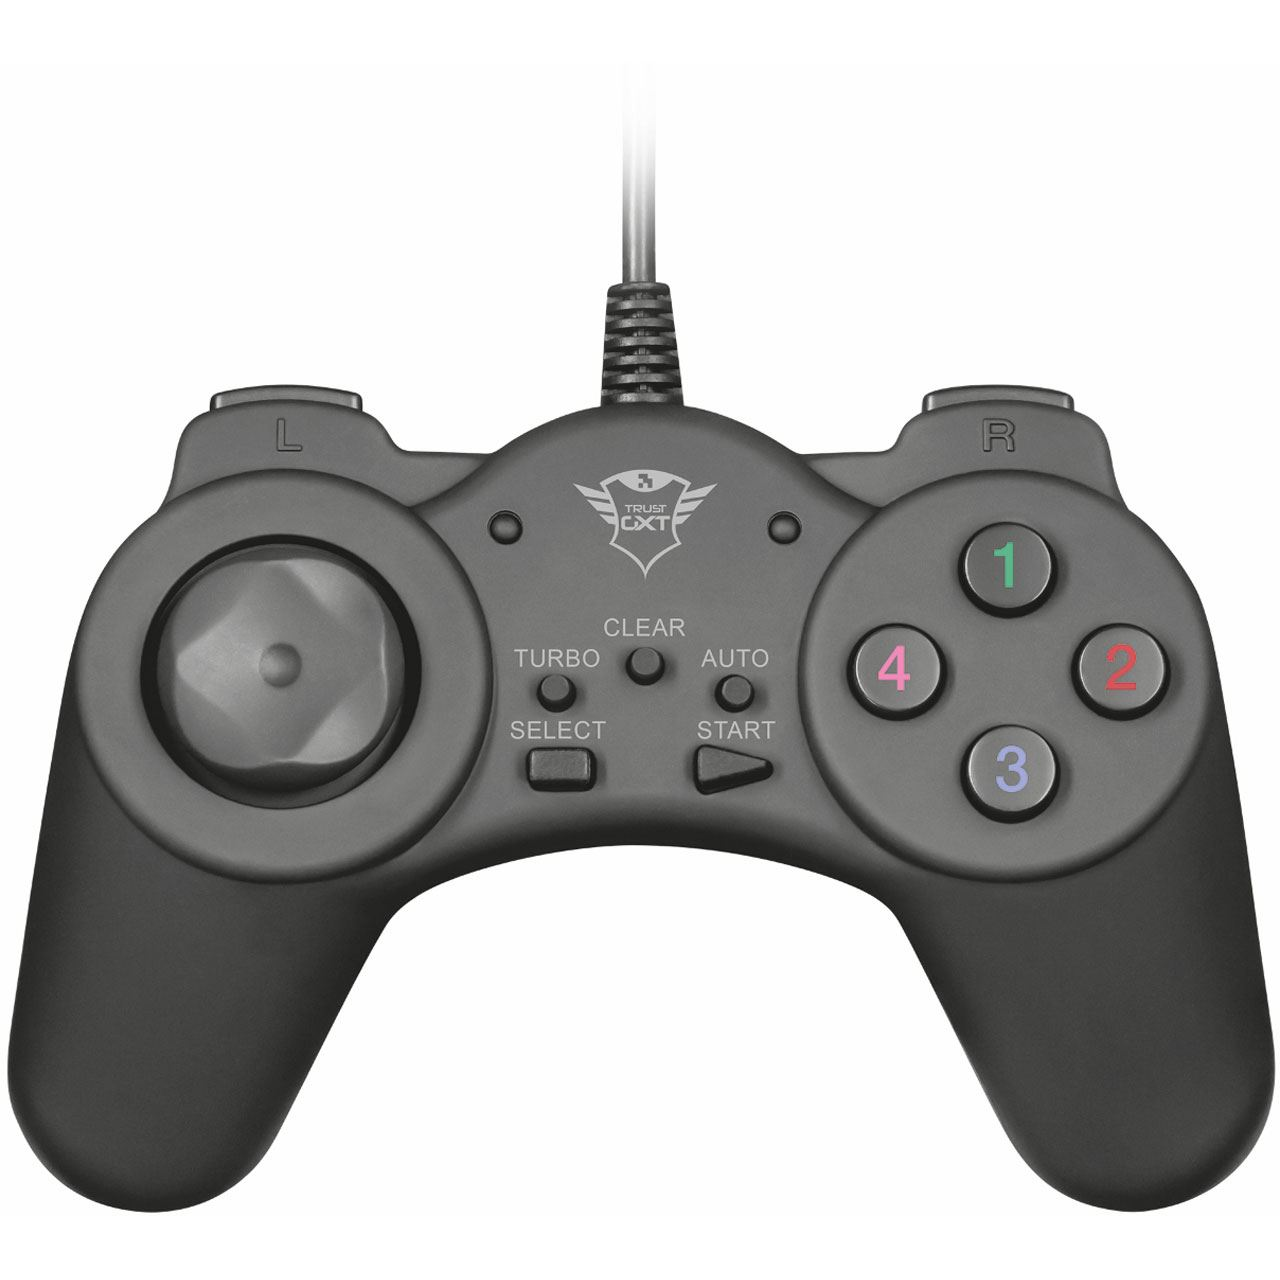 Trust Gxt 510 Tebur Gamepad For Pc And Laptop Gamepads